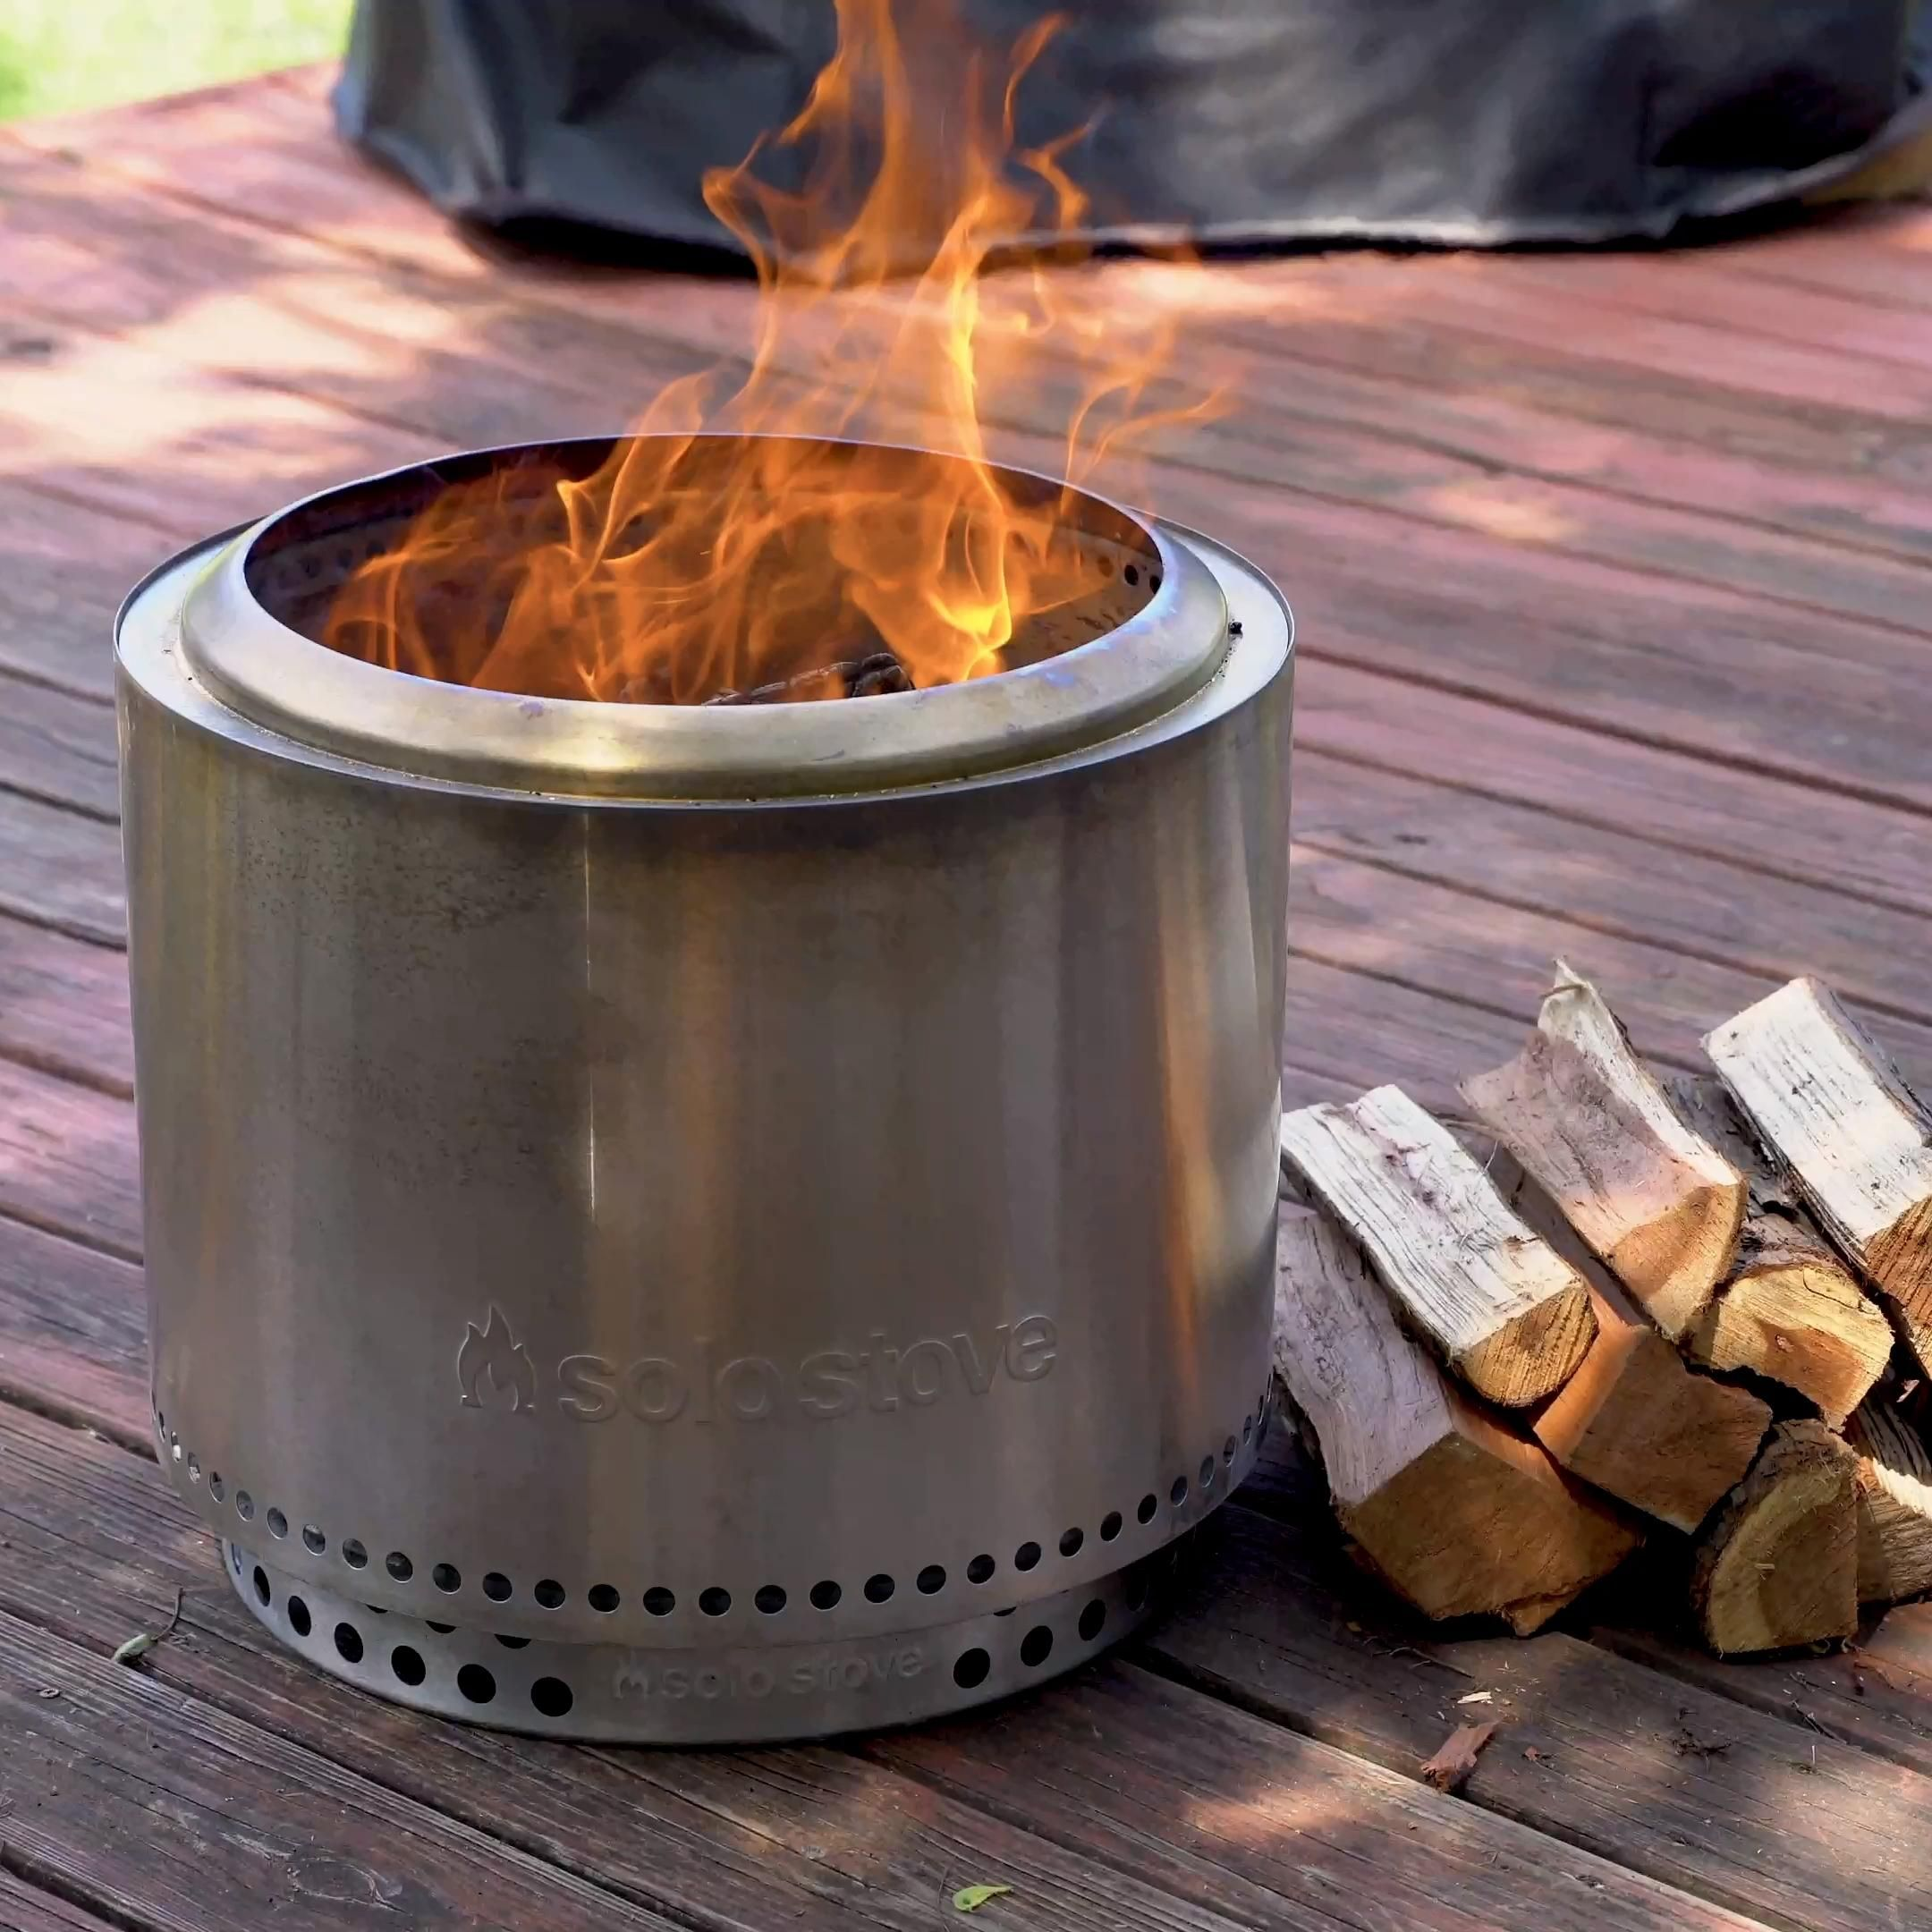 Upgrade Your Fire Pit & Make More Backyard Memorie